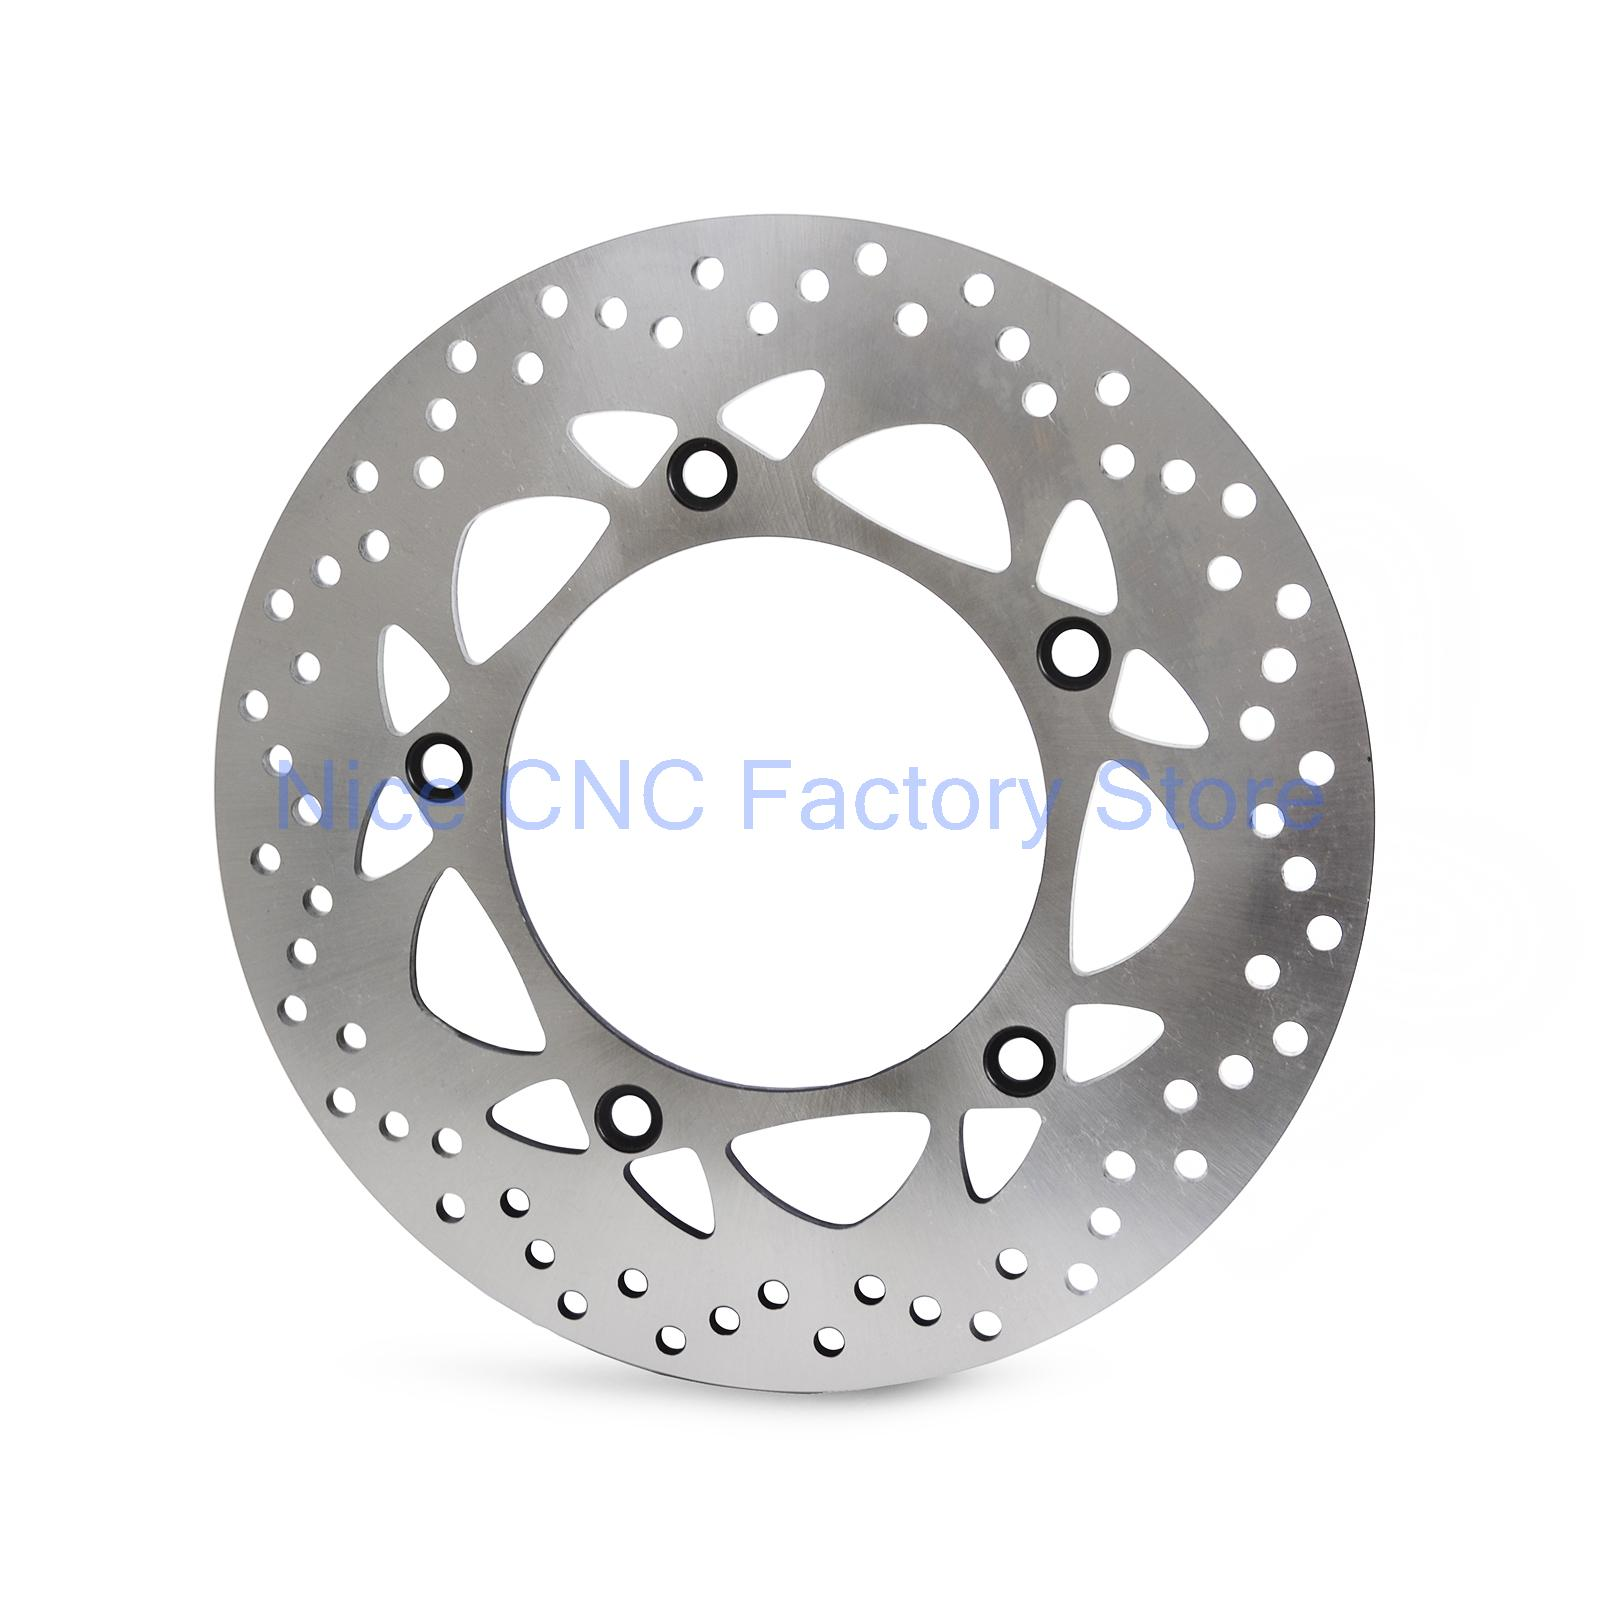 Motorcycle Rear Brake Disc Rotor For Yamaha T-Max530 Tmax530 2015 T-Max500 Tmax500 2012 -2014 XP500 XP 500 2013 2014 keoghs motorcycle brake disc brake rotor floating 260mm 82mm diameter cnc for yamaha scooter bws cygnus front disc replace